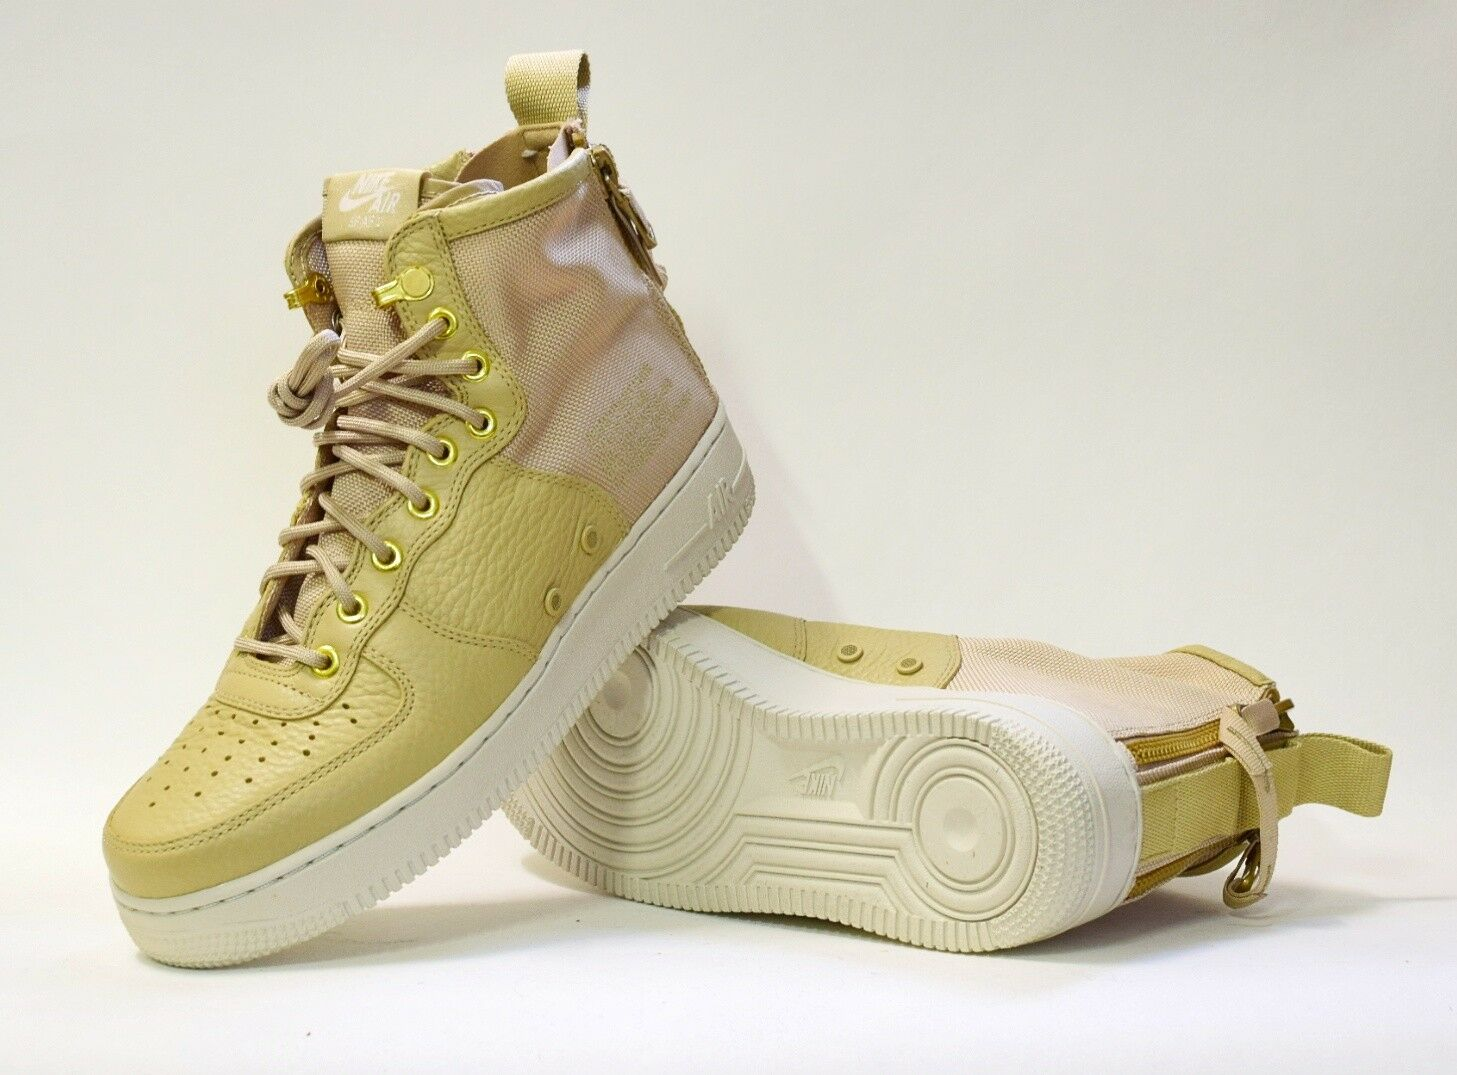 Authentic Nike Air Force 1 SF MID AF1 Tan Light Bone SZ US 8 Brand New Cheap